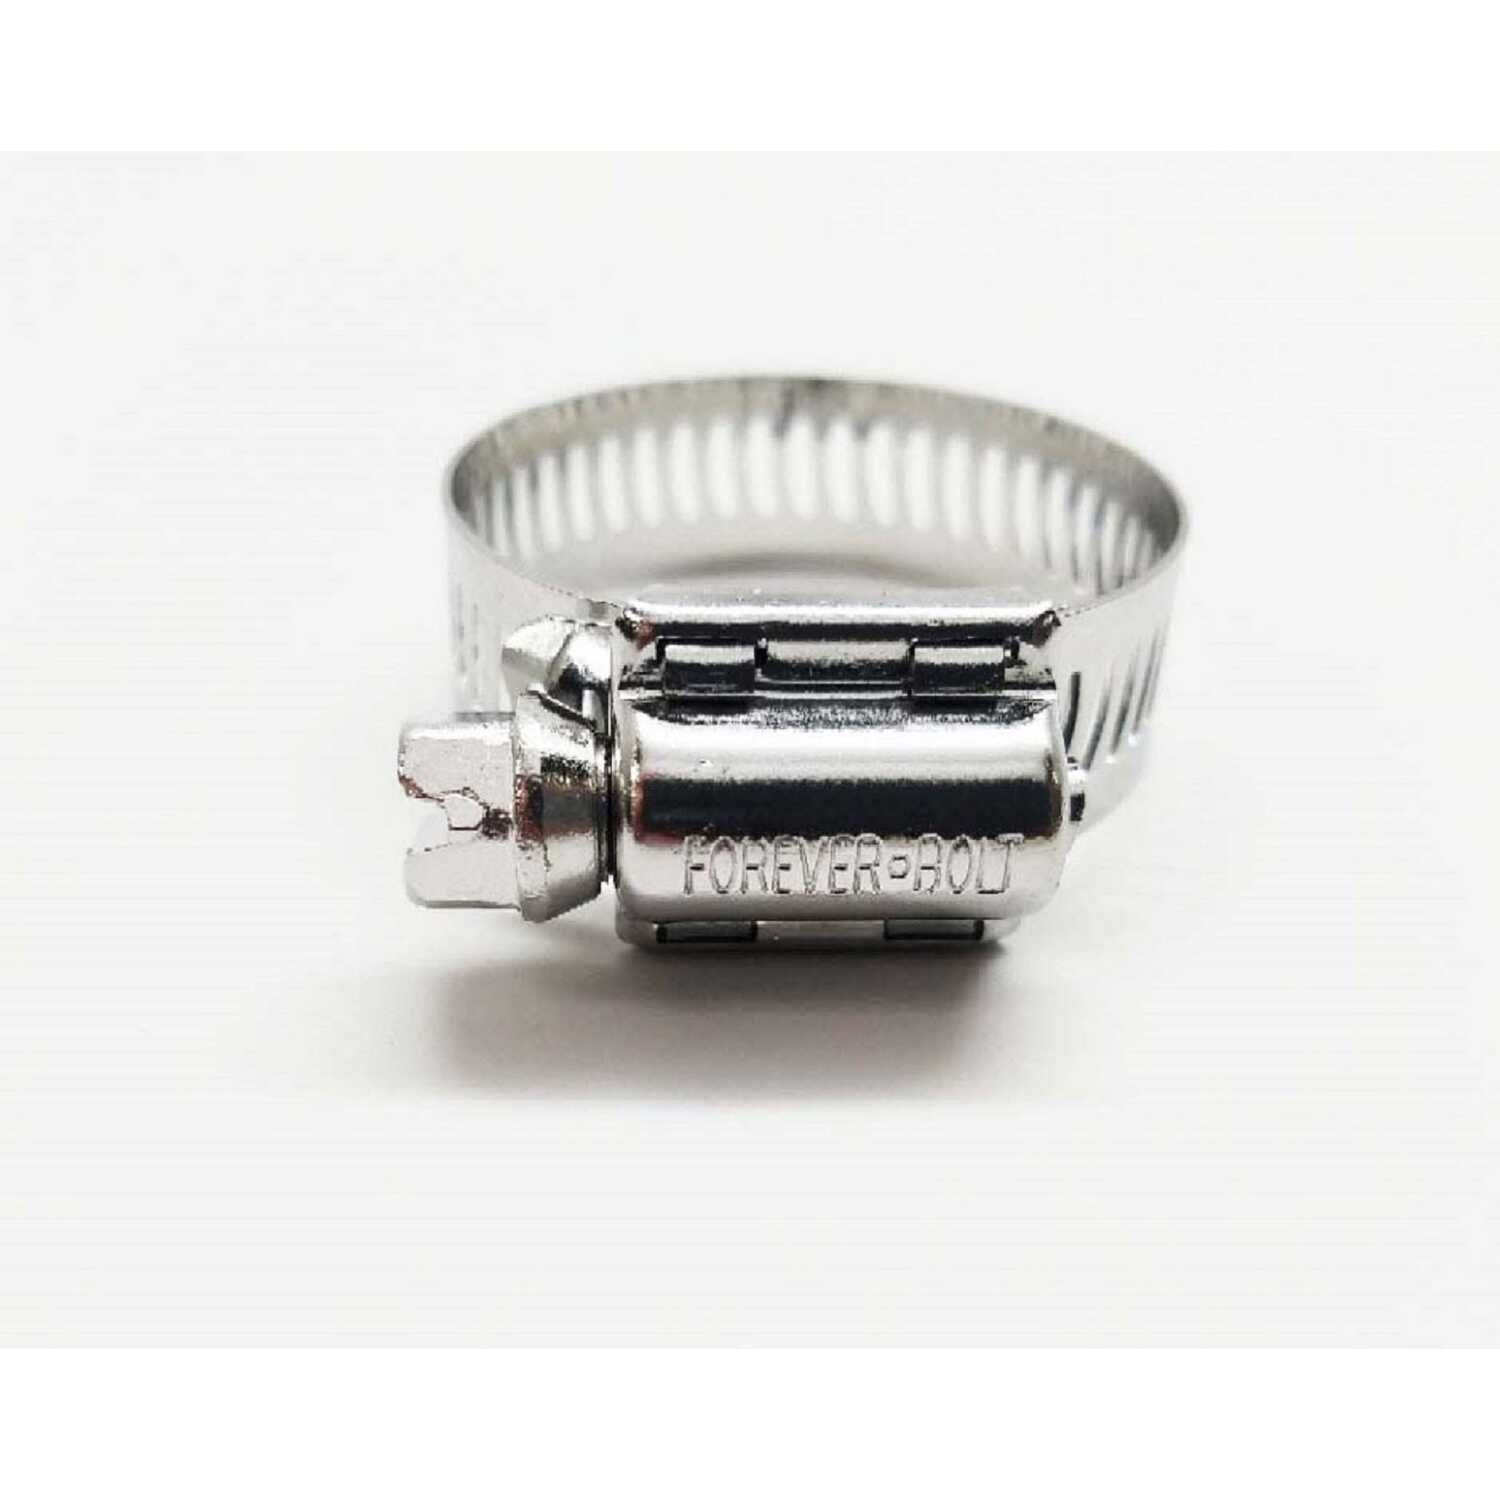 FOREVER BOLT  13/16 in. to 1-1/2 in. Stainless Steel  Band  Hose Clamp